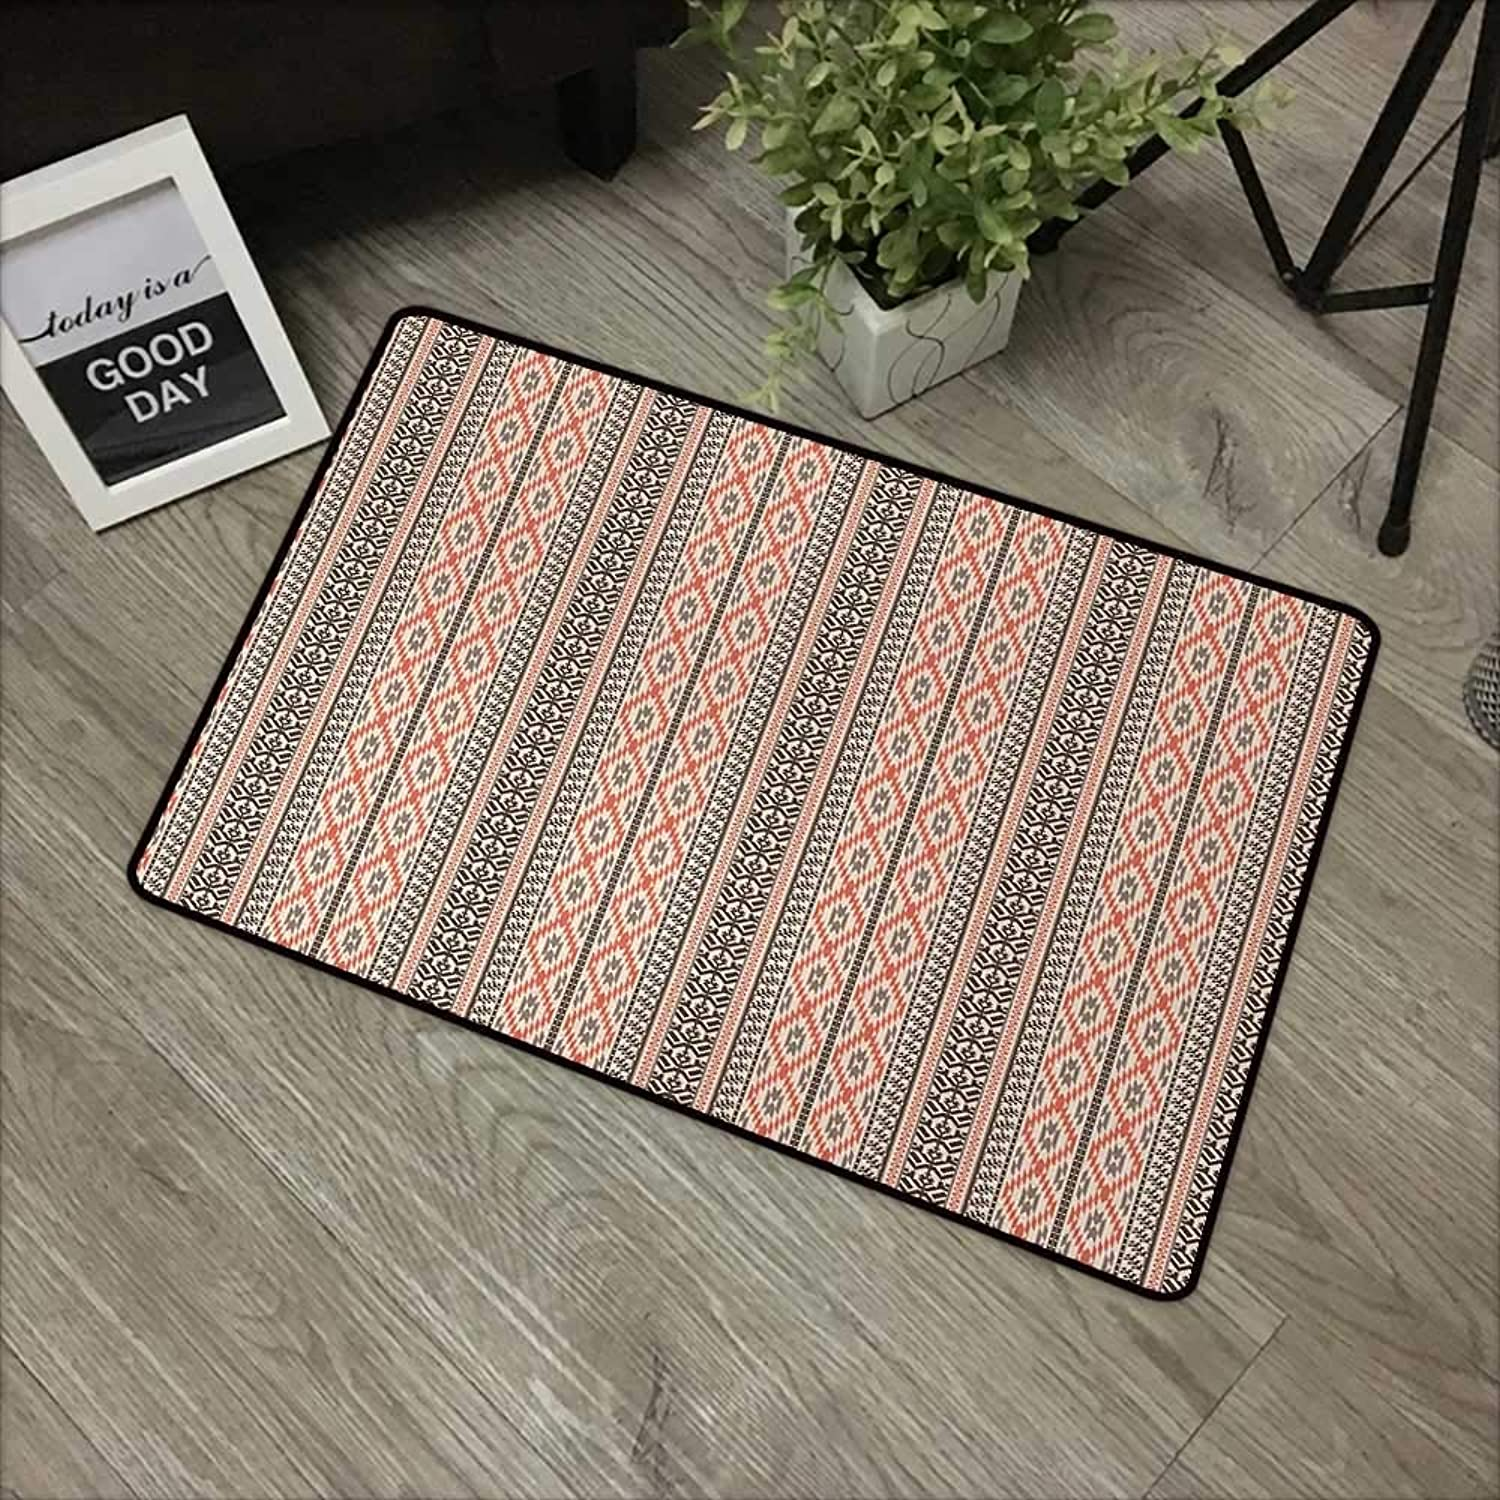 Learning pad W35 x L59 INCH Ethnic,greenical Borders with Stripes and Geometric Ornaments Abstract Antique Aztec Design,Multicolor Non-Slip, with Non-Slip Backing,Non-Slip Door Mat Carpet